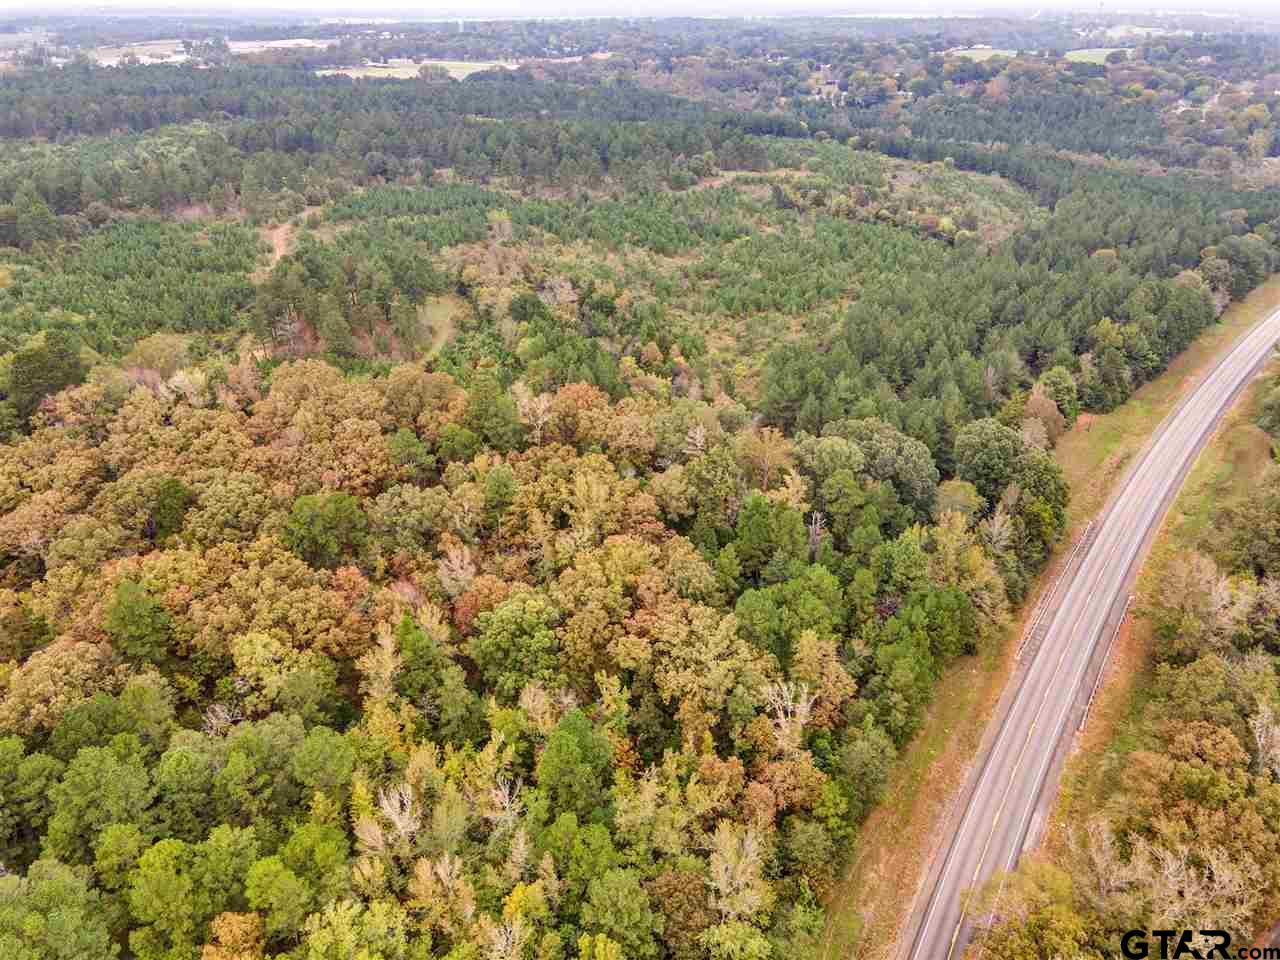 Great Property in Winona offering 208 +/- Acres with easy access to I 20 and over 1,000 ft of Hwy 155 Road Frontage as well as over 3,500 feet of Johnson Rd Frontage access. Drivable trails, young and old timber Electricity, water & gas are available   Set up for recreational or ideal to build your secluded country home!